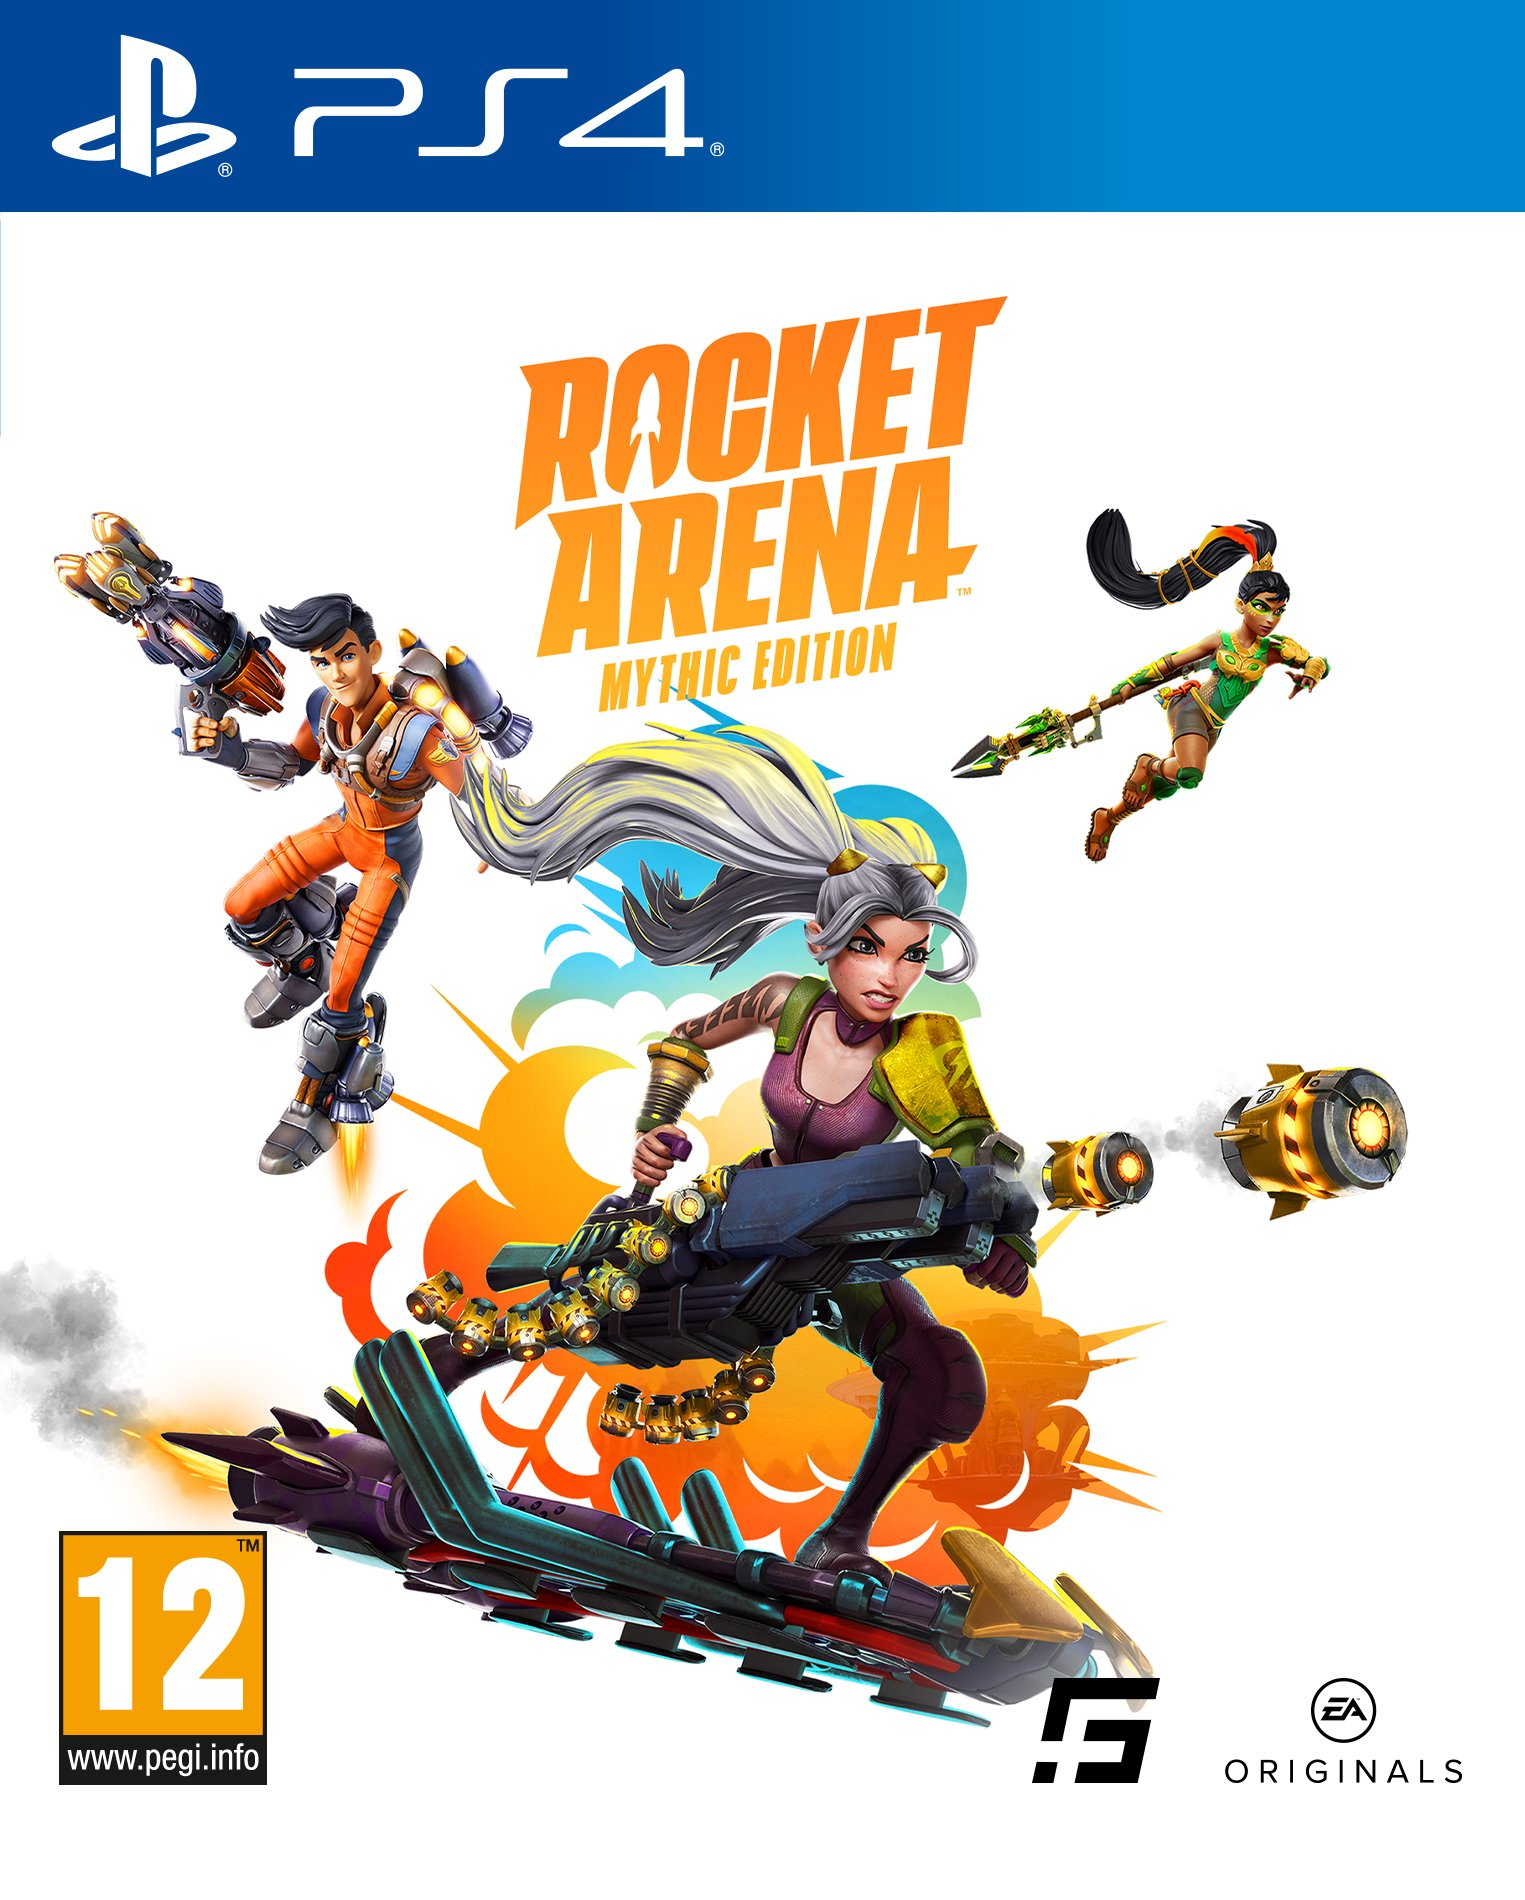 Rocket Arena Mythic Edition (PS4)